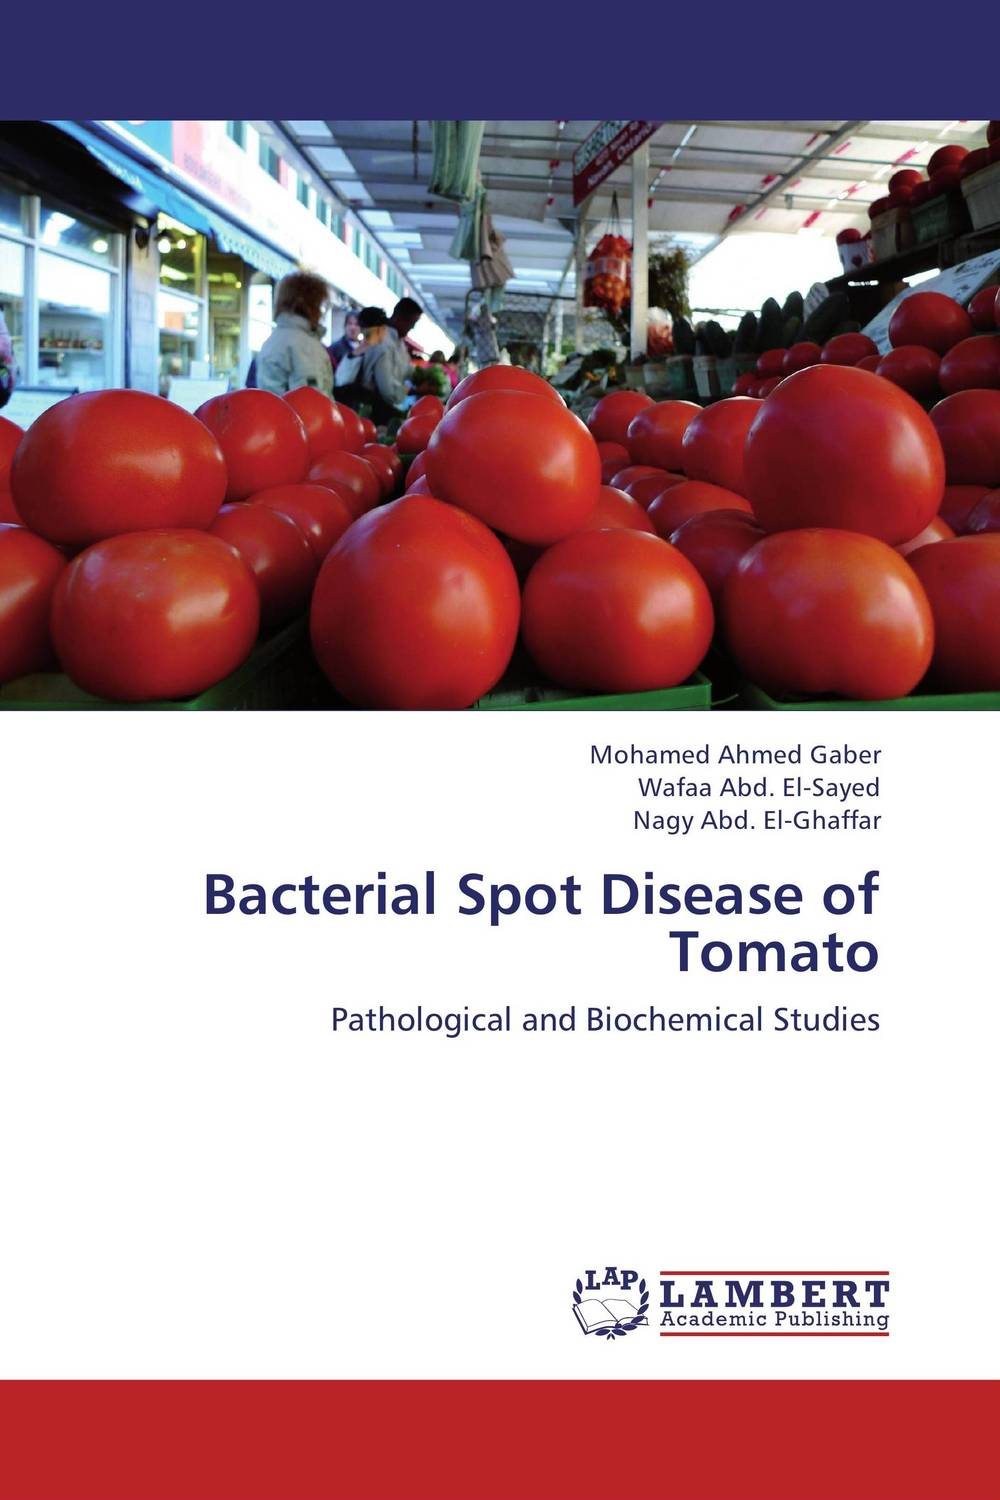 Bacterial Spot Disease of Tomato analysis of bacterial colonization on gypsum casts